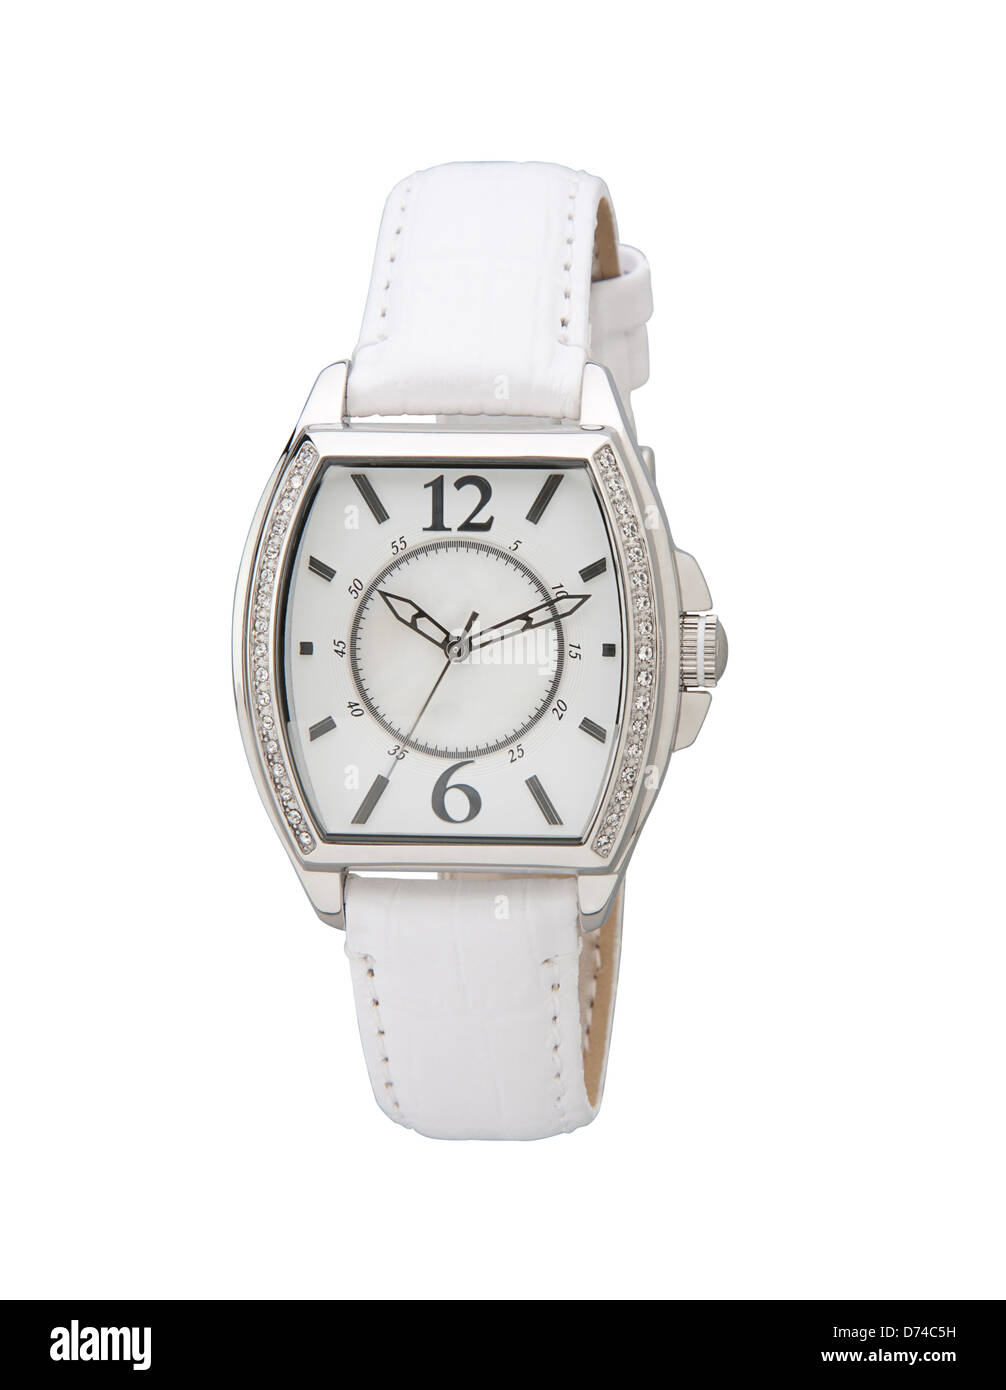 The elegance wristwatch decorated by crystal nice for you - Stock Image